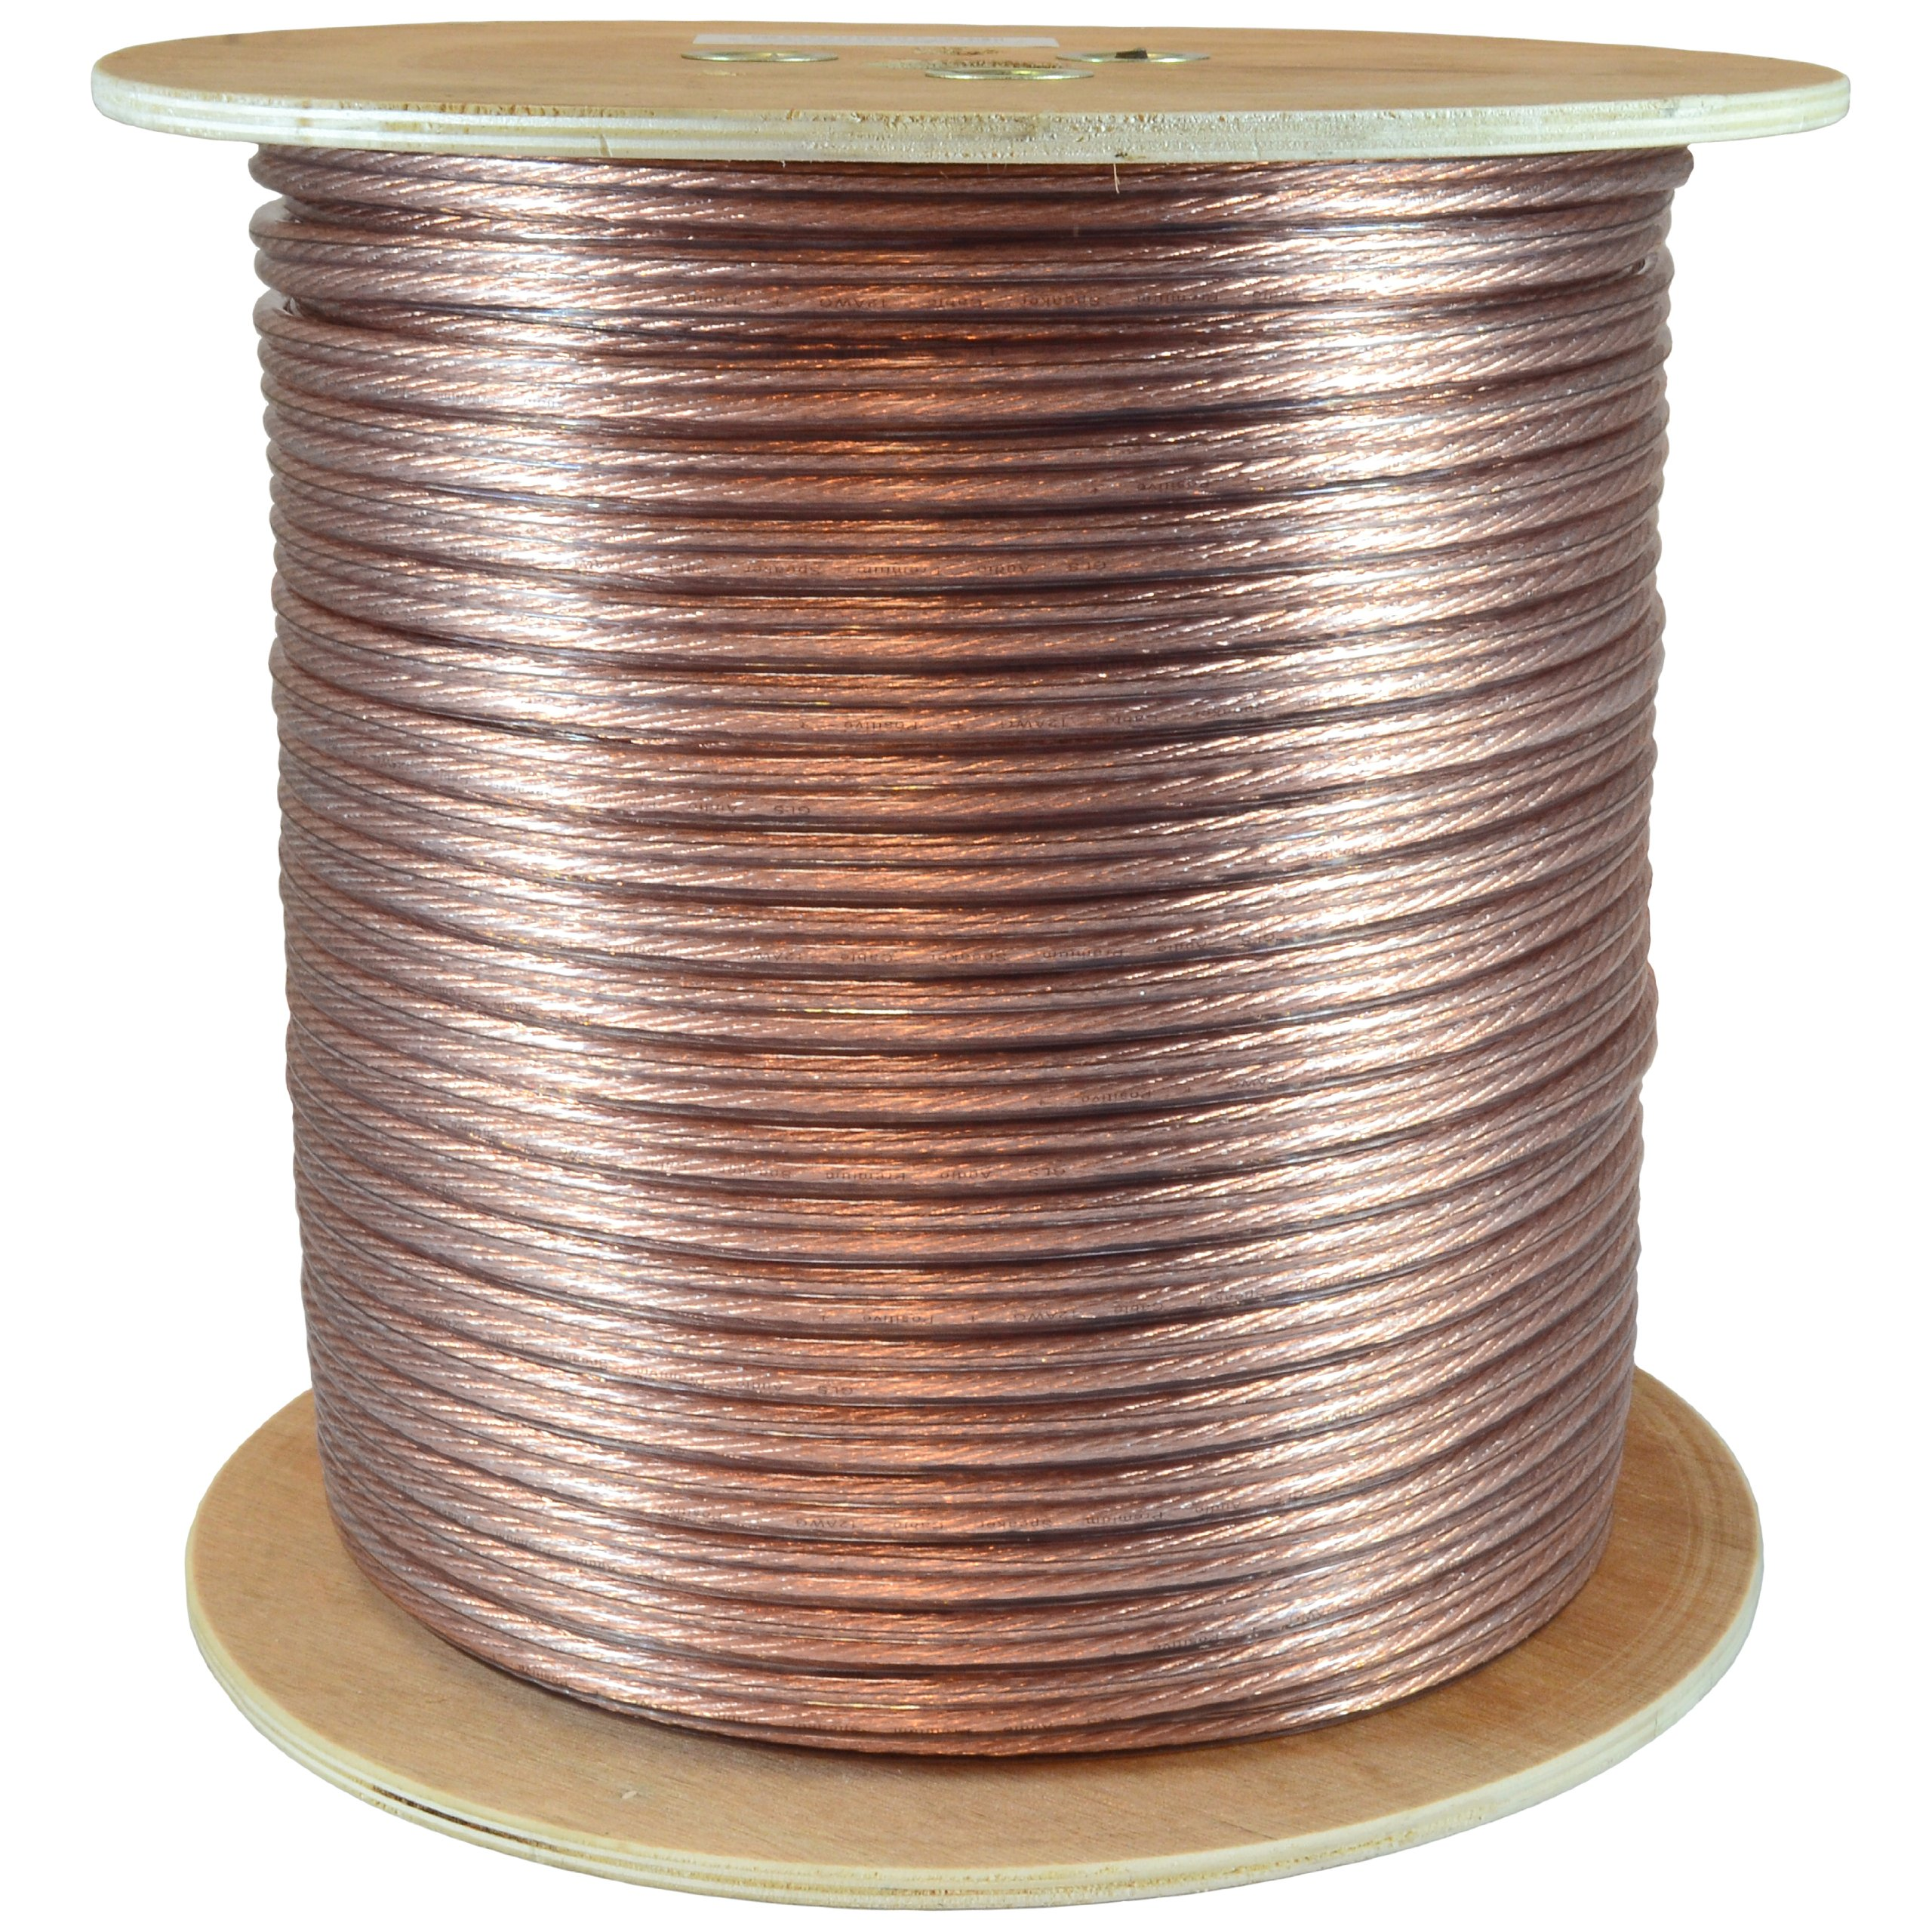 GLS Audio Premium 12 Gauge 500 Feet Speaker Wire - True 12AWG Speaker Cable 500ft Clear Jacket - High Quality 500' Spool Roll 12G 12/2 Bulk